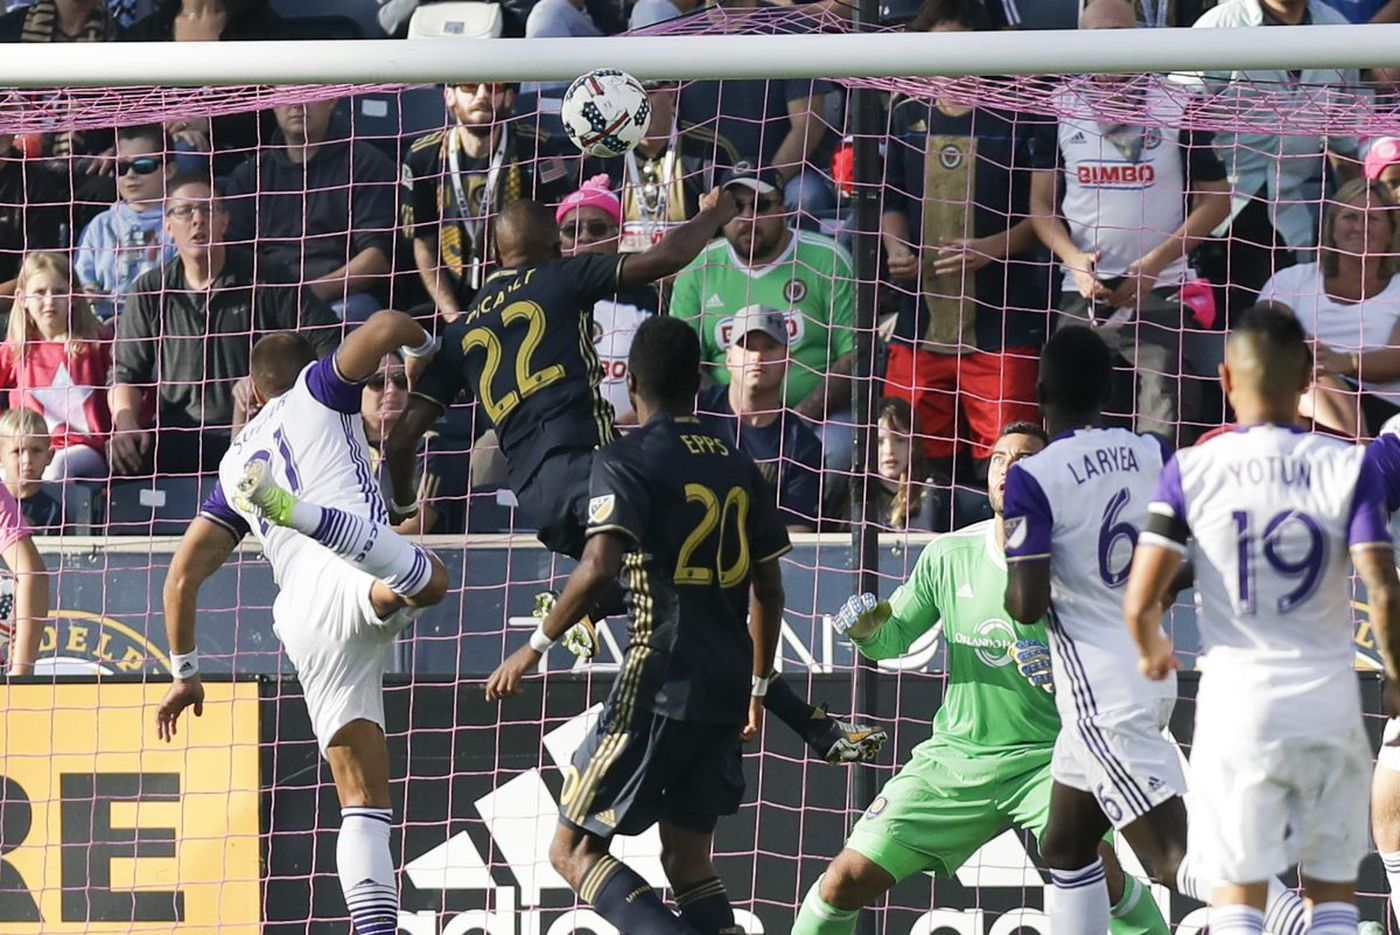 Union rout Orlando City 6-1 in season finale; Sapong sets goals record